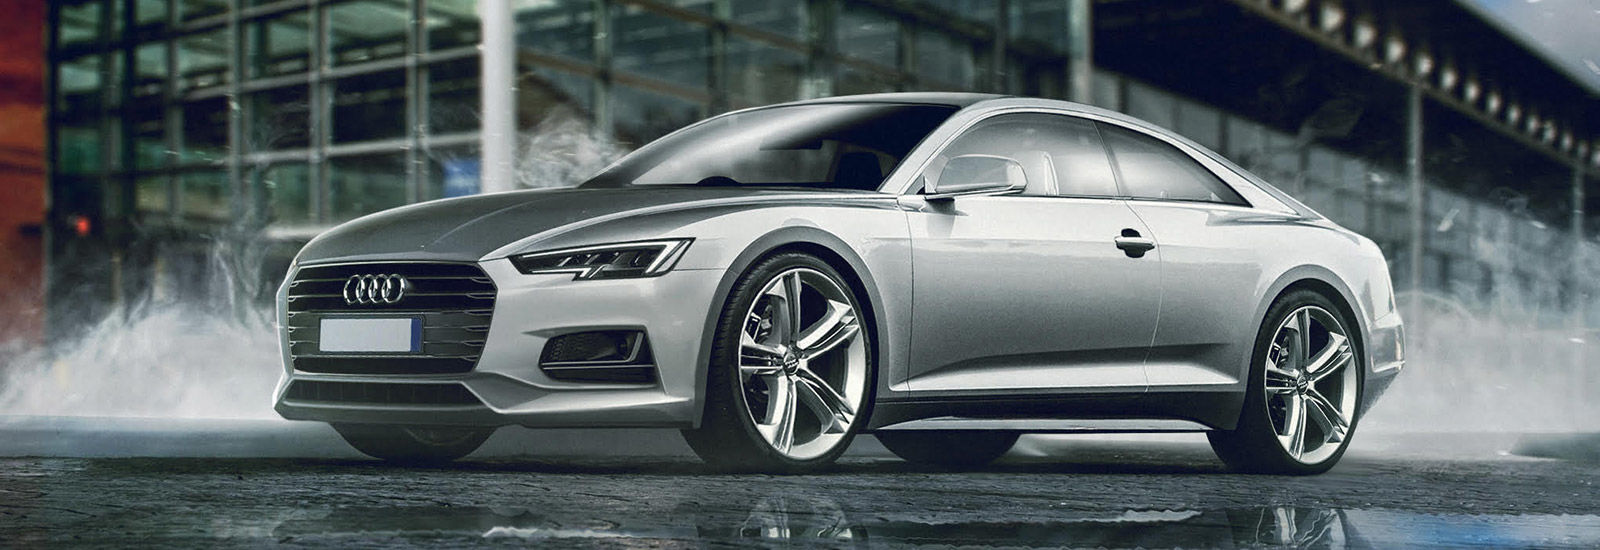 New Audi A9 price, specs and release date | carwow